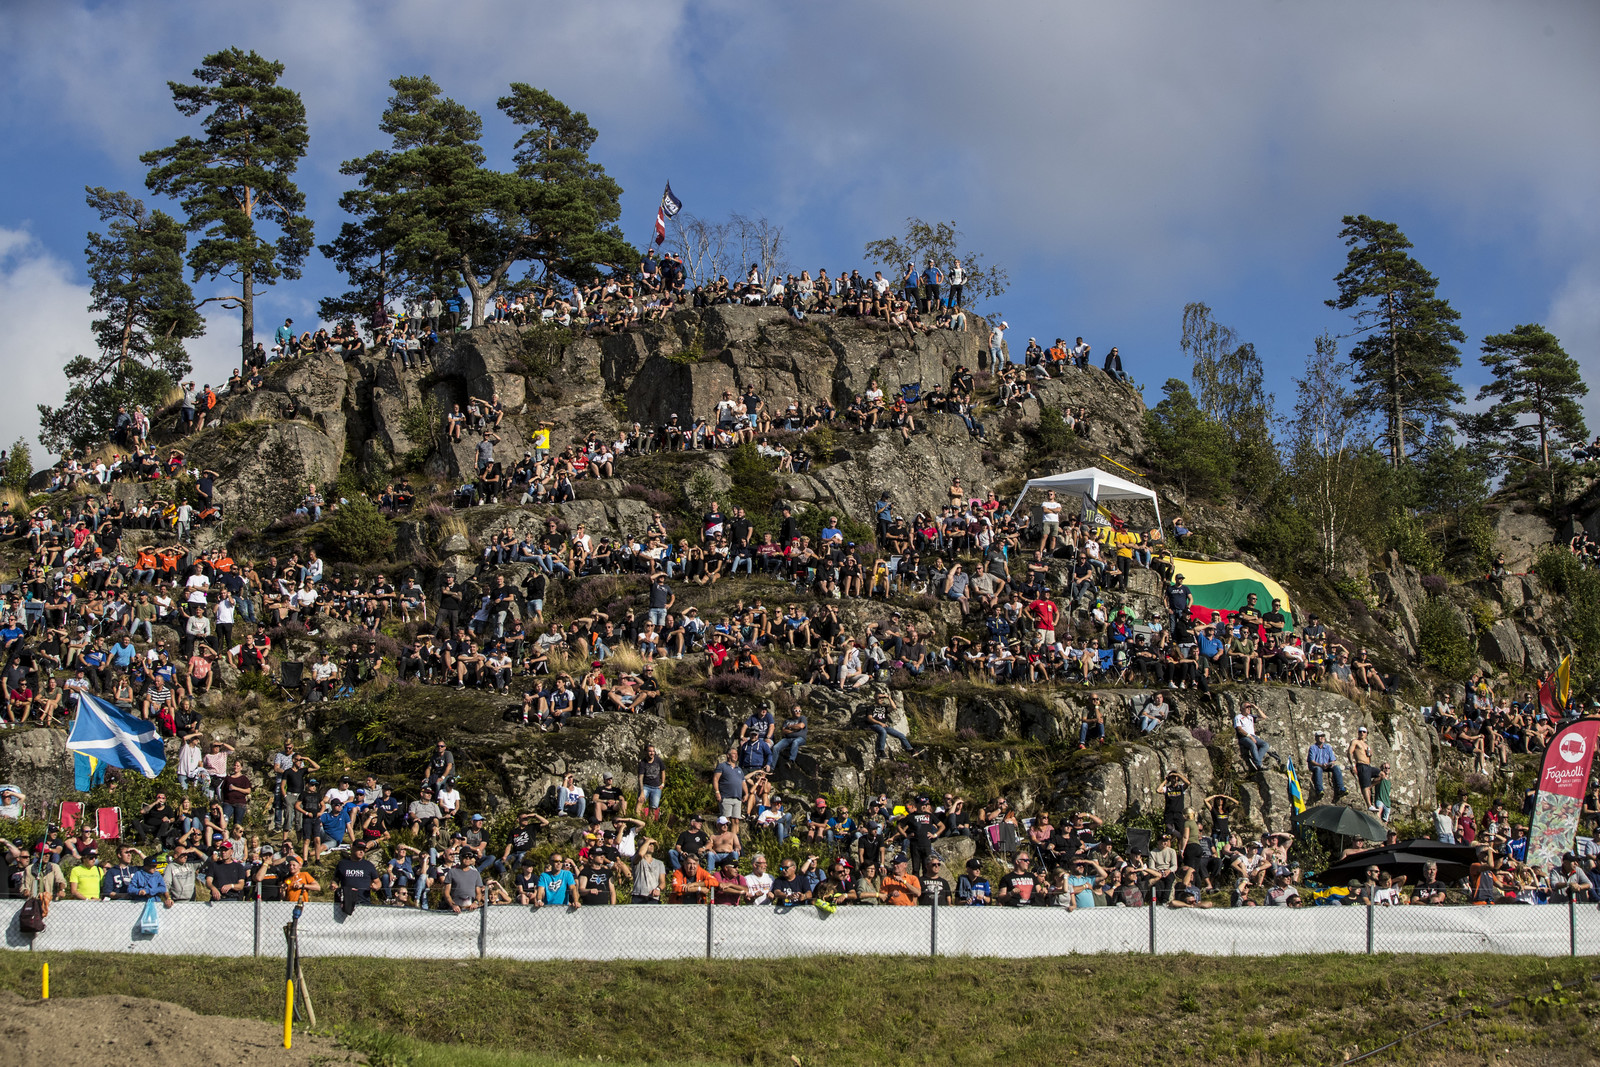 The Swedish fans don't mind a little rock climbing to get the best seats.